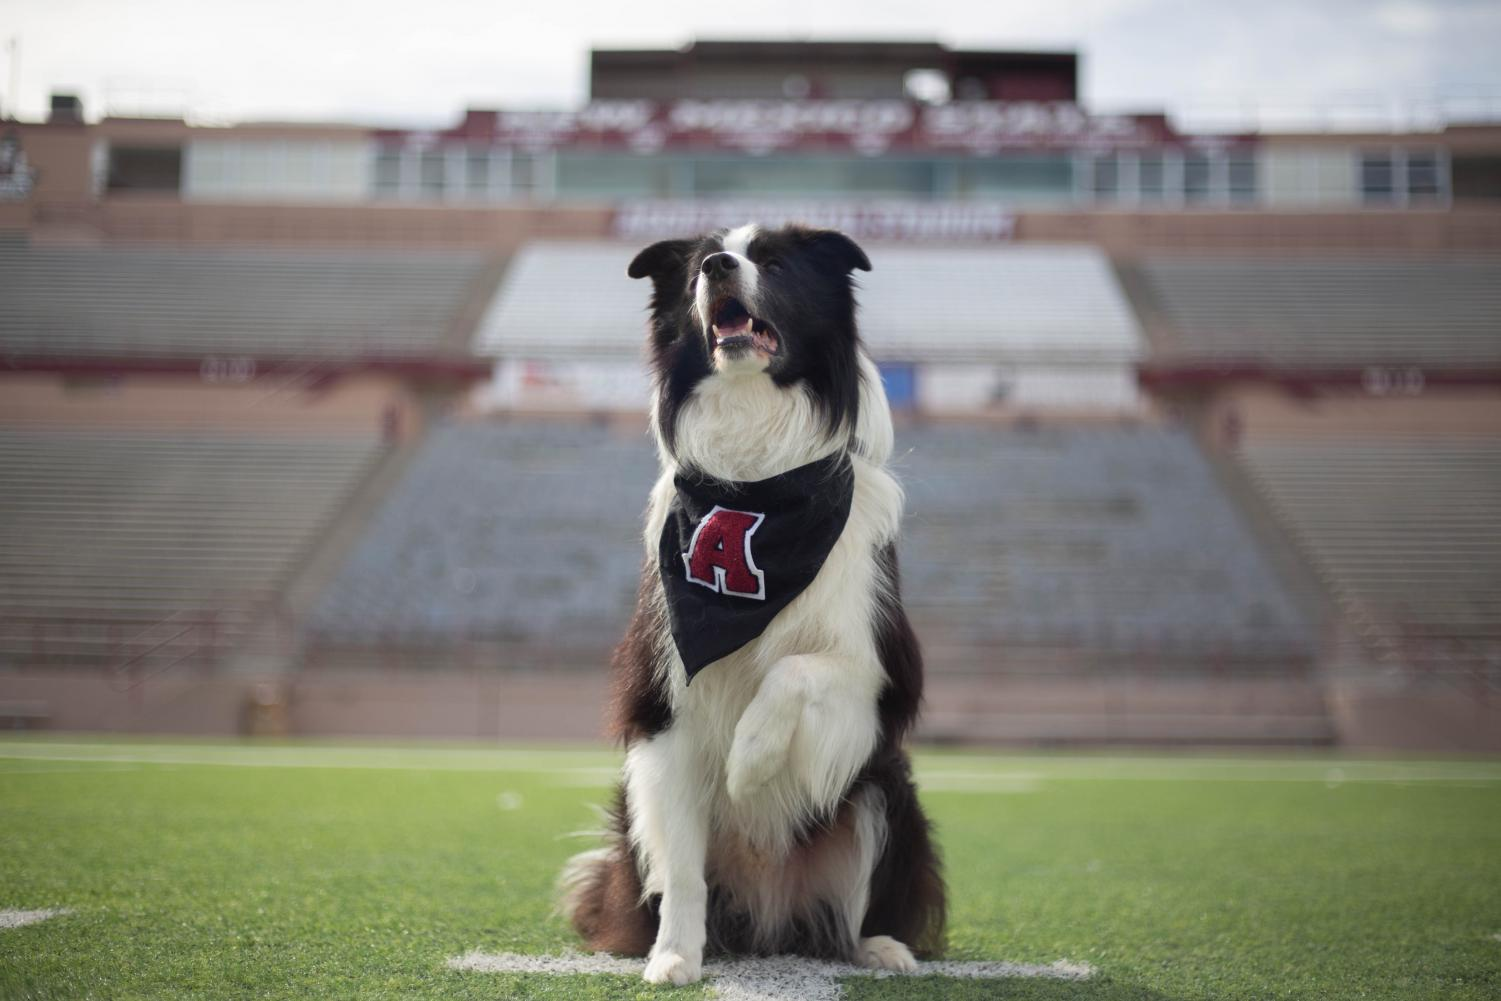 New Mexico's goodest boy poses on the field of his second home, the Aggie Memorial Stadium.